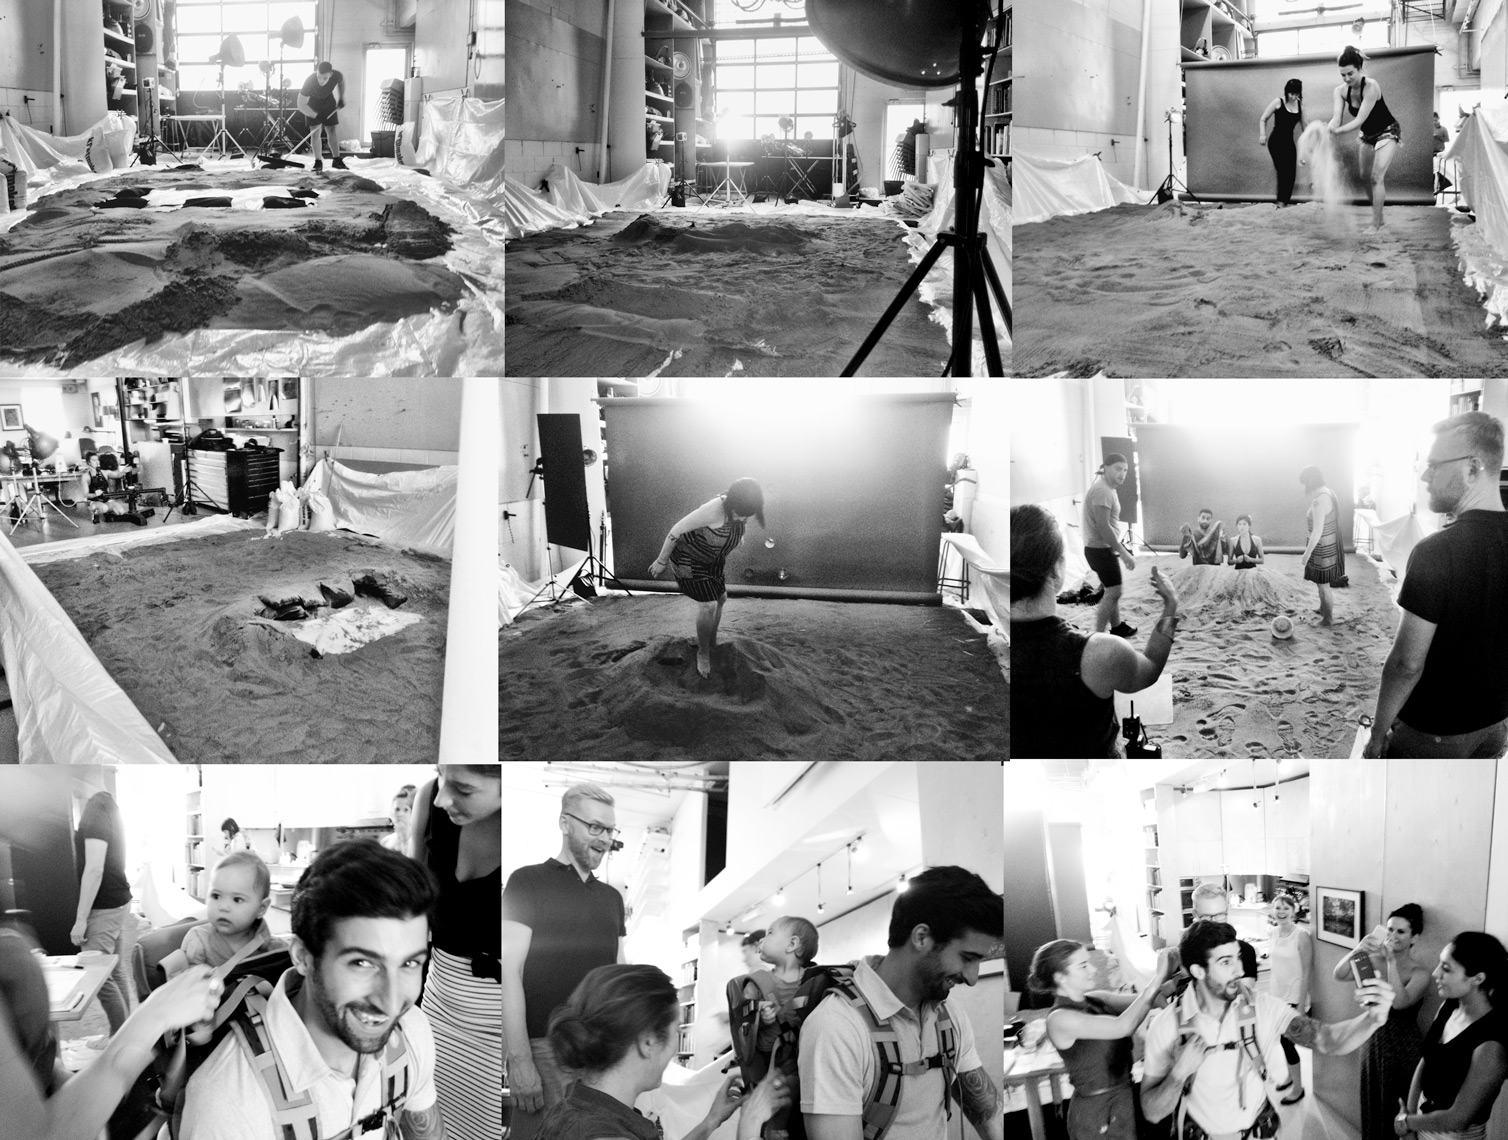 Manulife_BTS_Crew_Build_Beach_in_studio